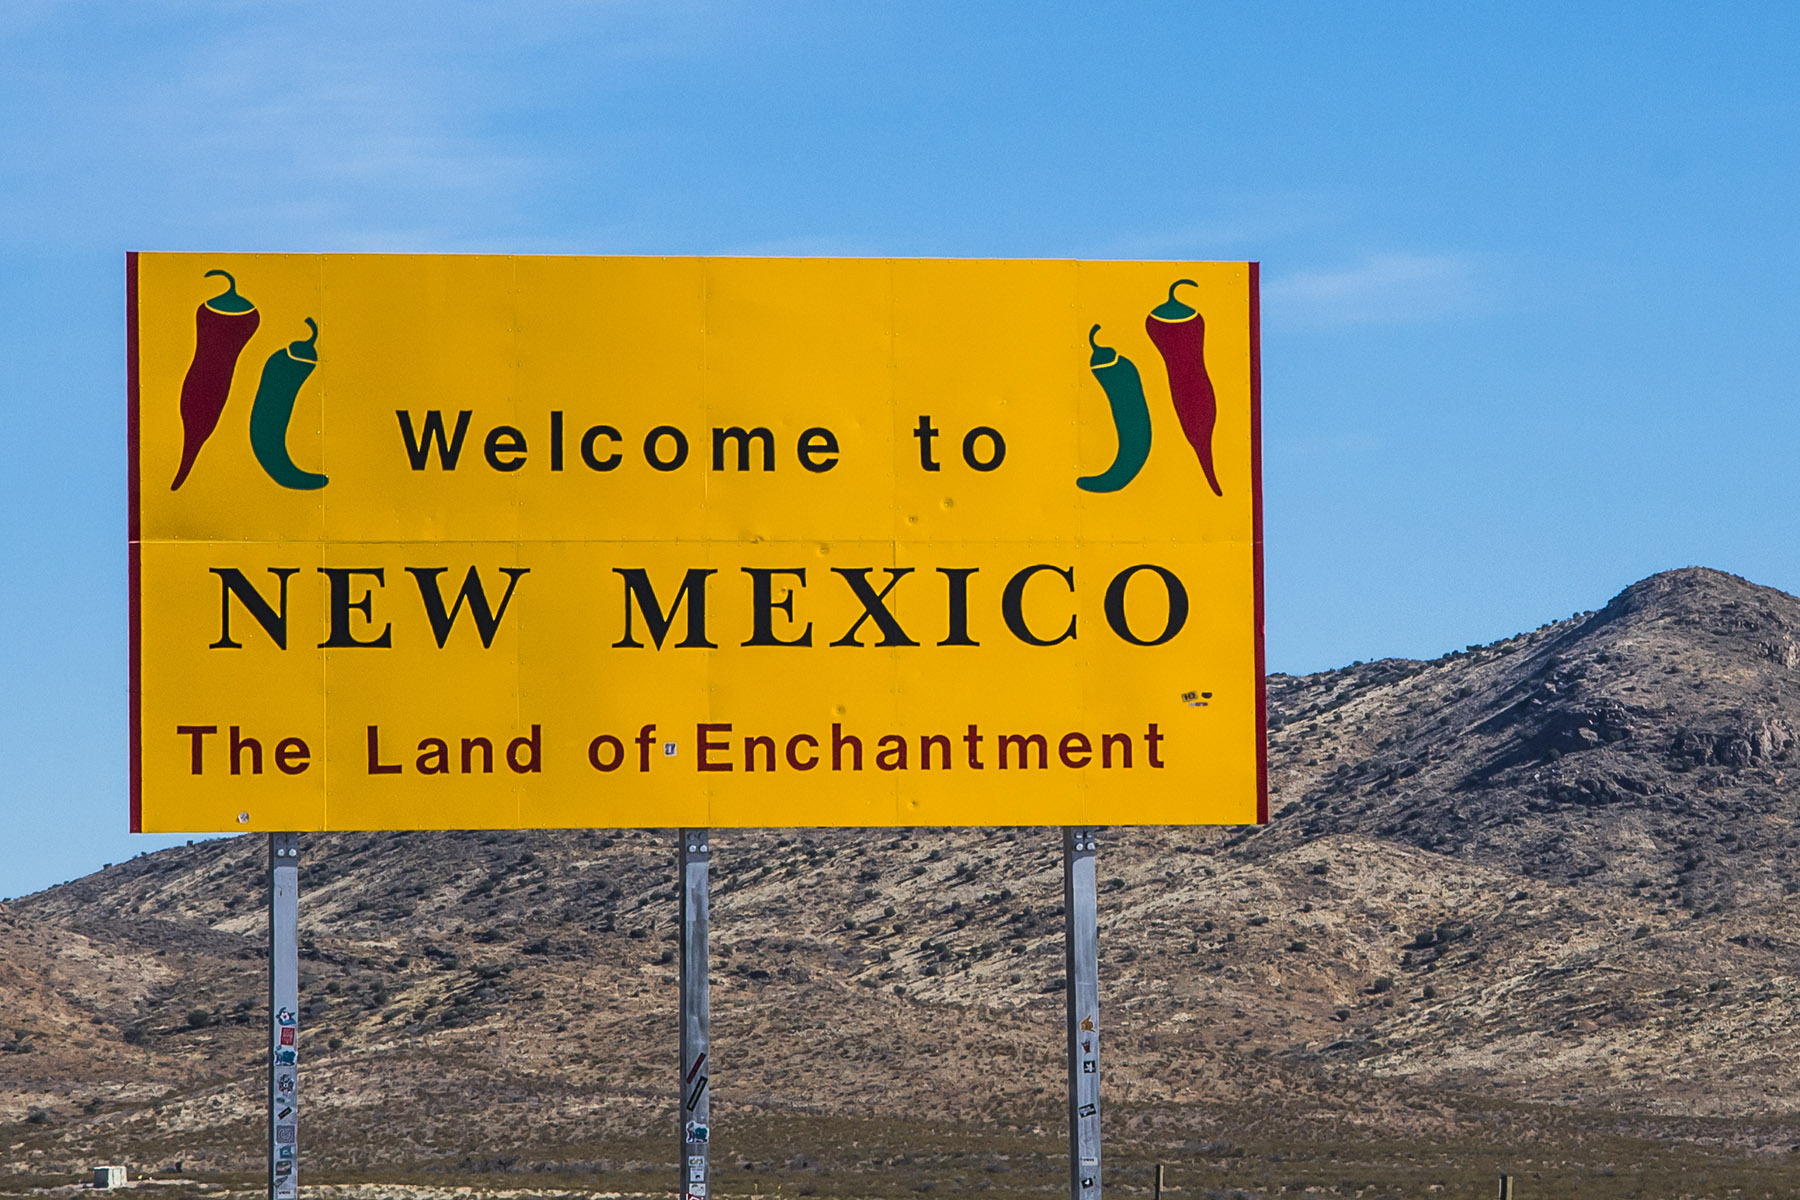 We've arrived! Welcome to New Mexico, the Land of Enchantment.